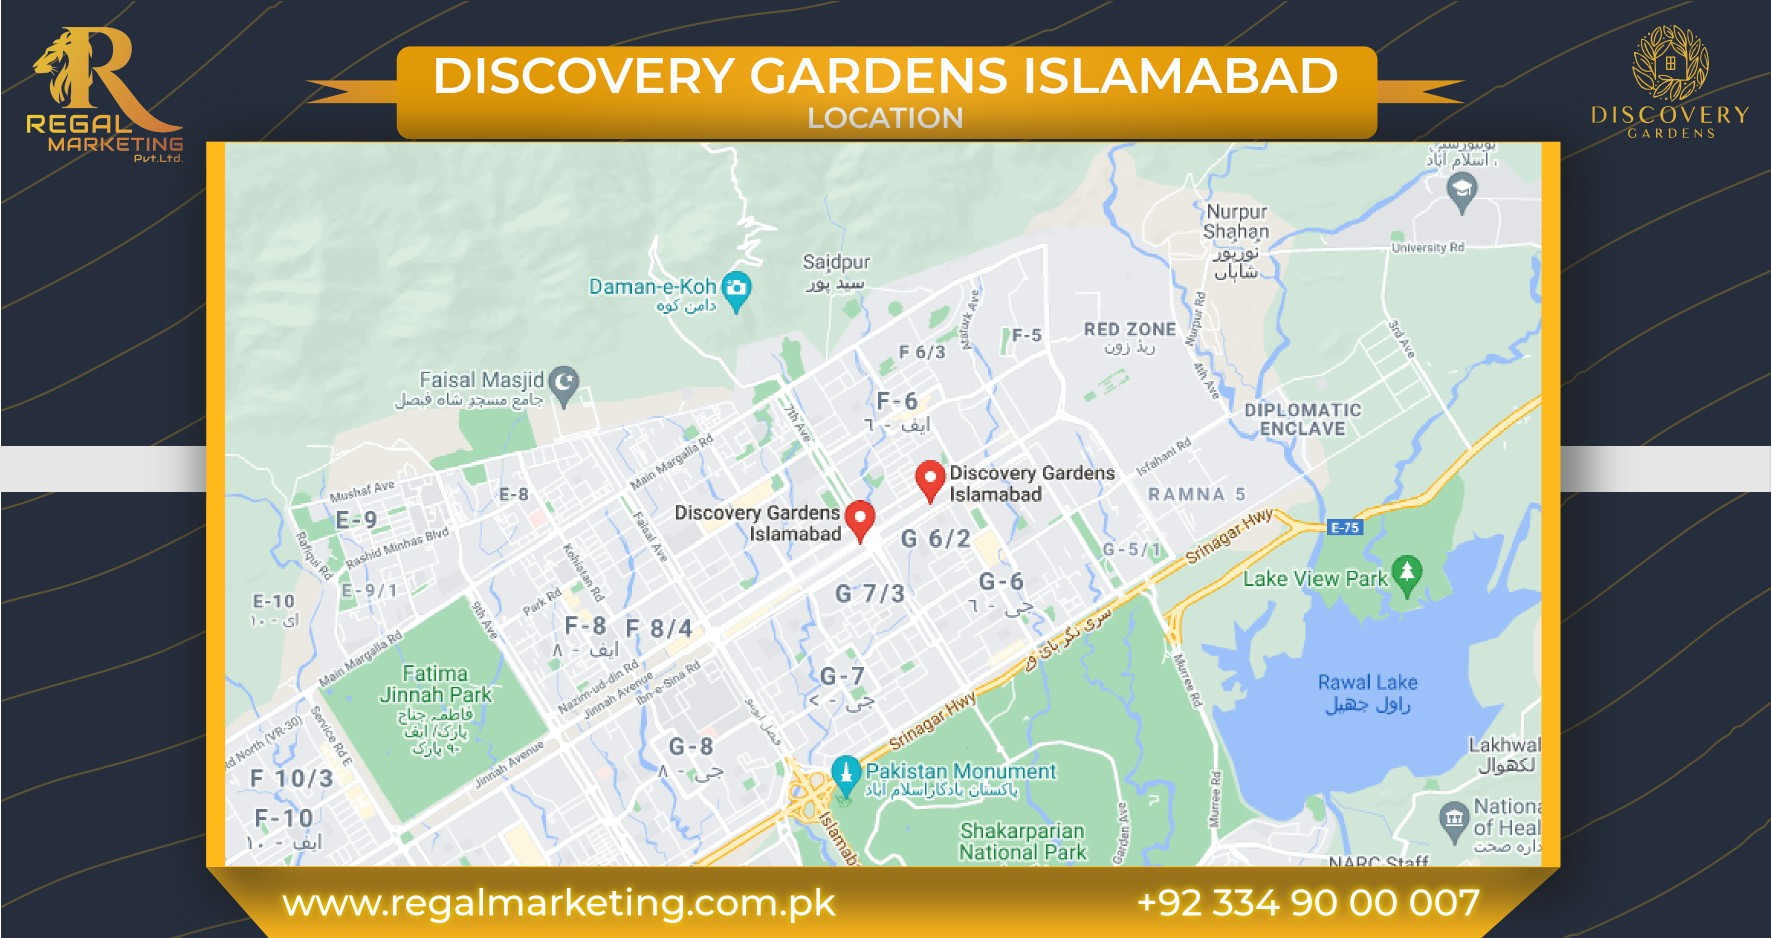 Discovery Gardens Islamabad Locations